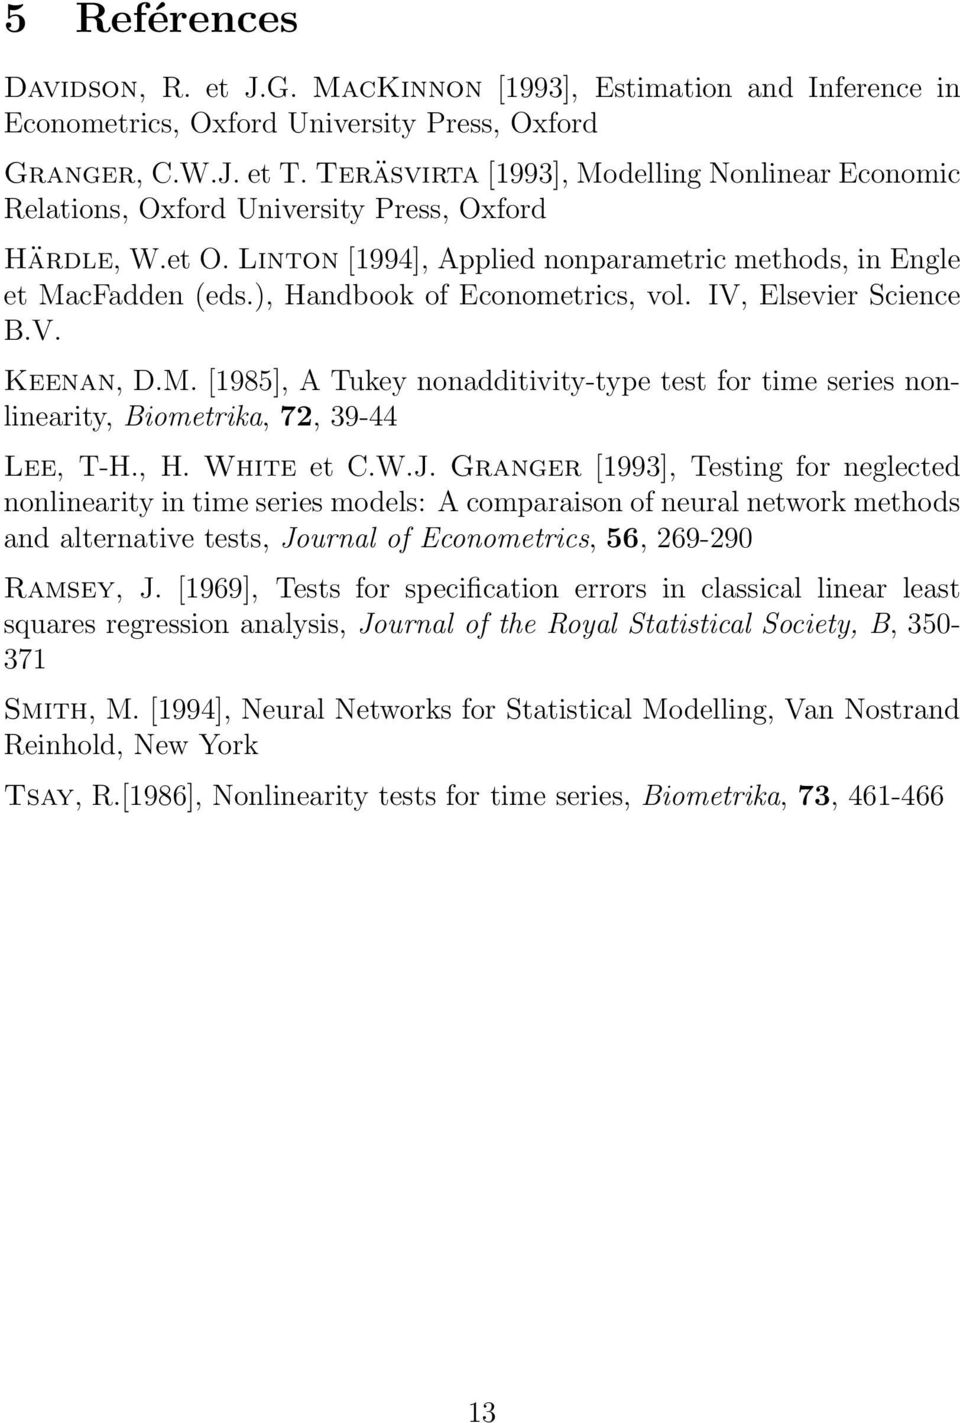 ), Handbook of Econometrics, vol. IV, Elsevier Science B.V. Keenan, D.M. [1985], A Tukey nonadditivity-type test for time series nonlinearity, Biometrika, 72, 39-44 Lee, T-H., H. White et C.W.J.